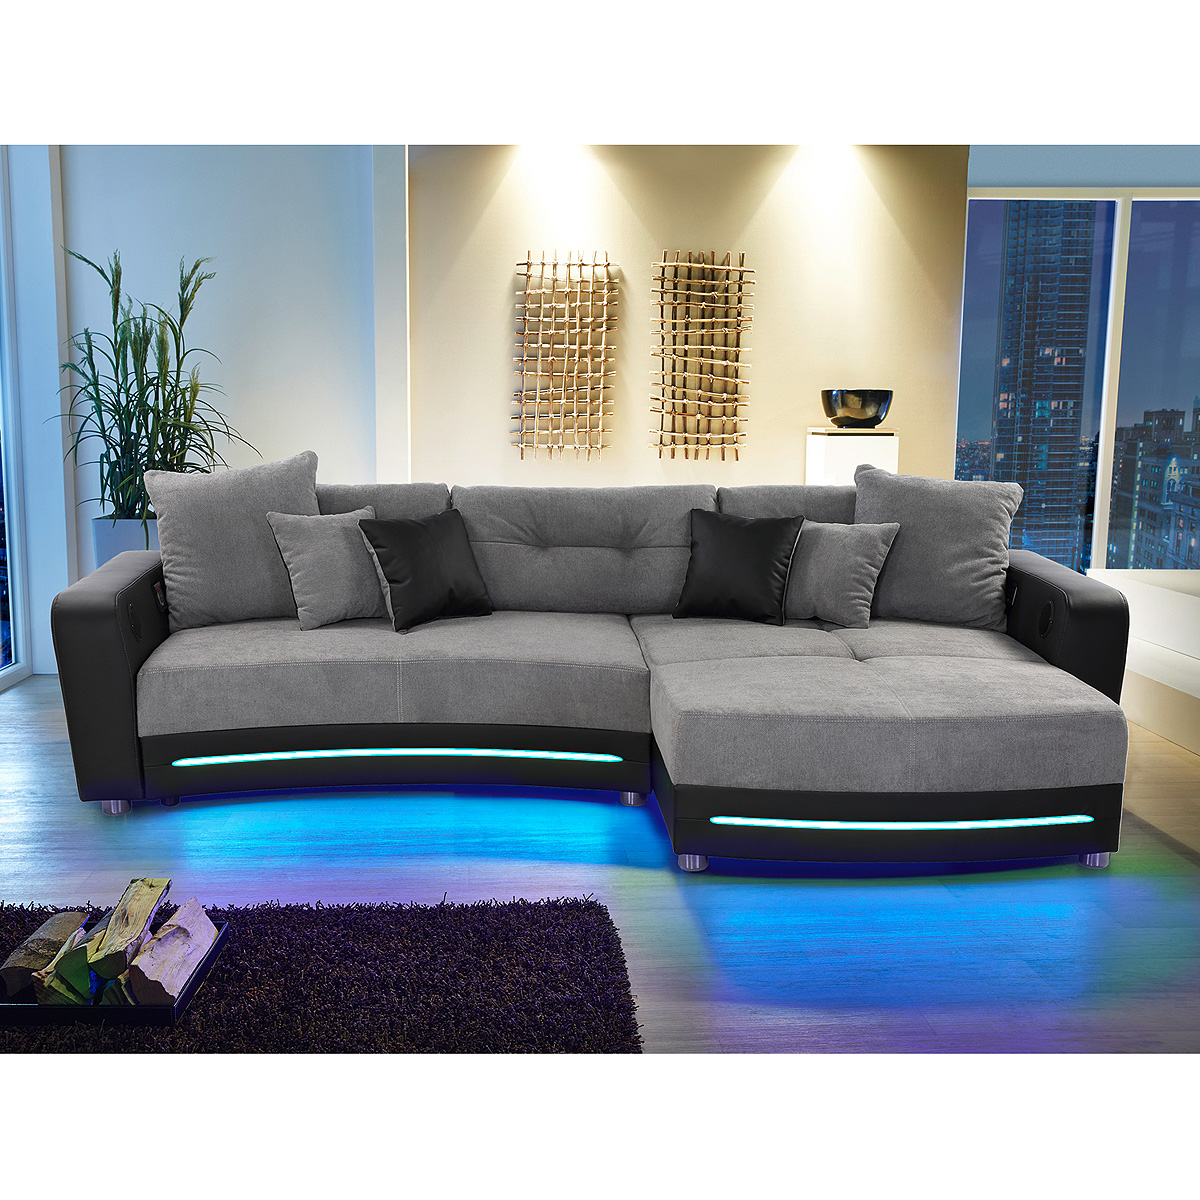 laredo sofa laredo sofa schwarz mit led und soundsystem thesofa. Black Bedroom Furniture Sets. Home Design Ideas